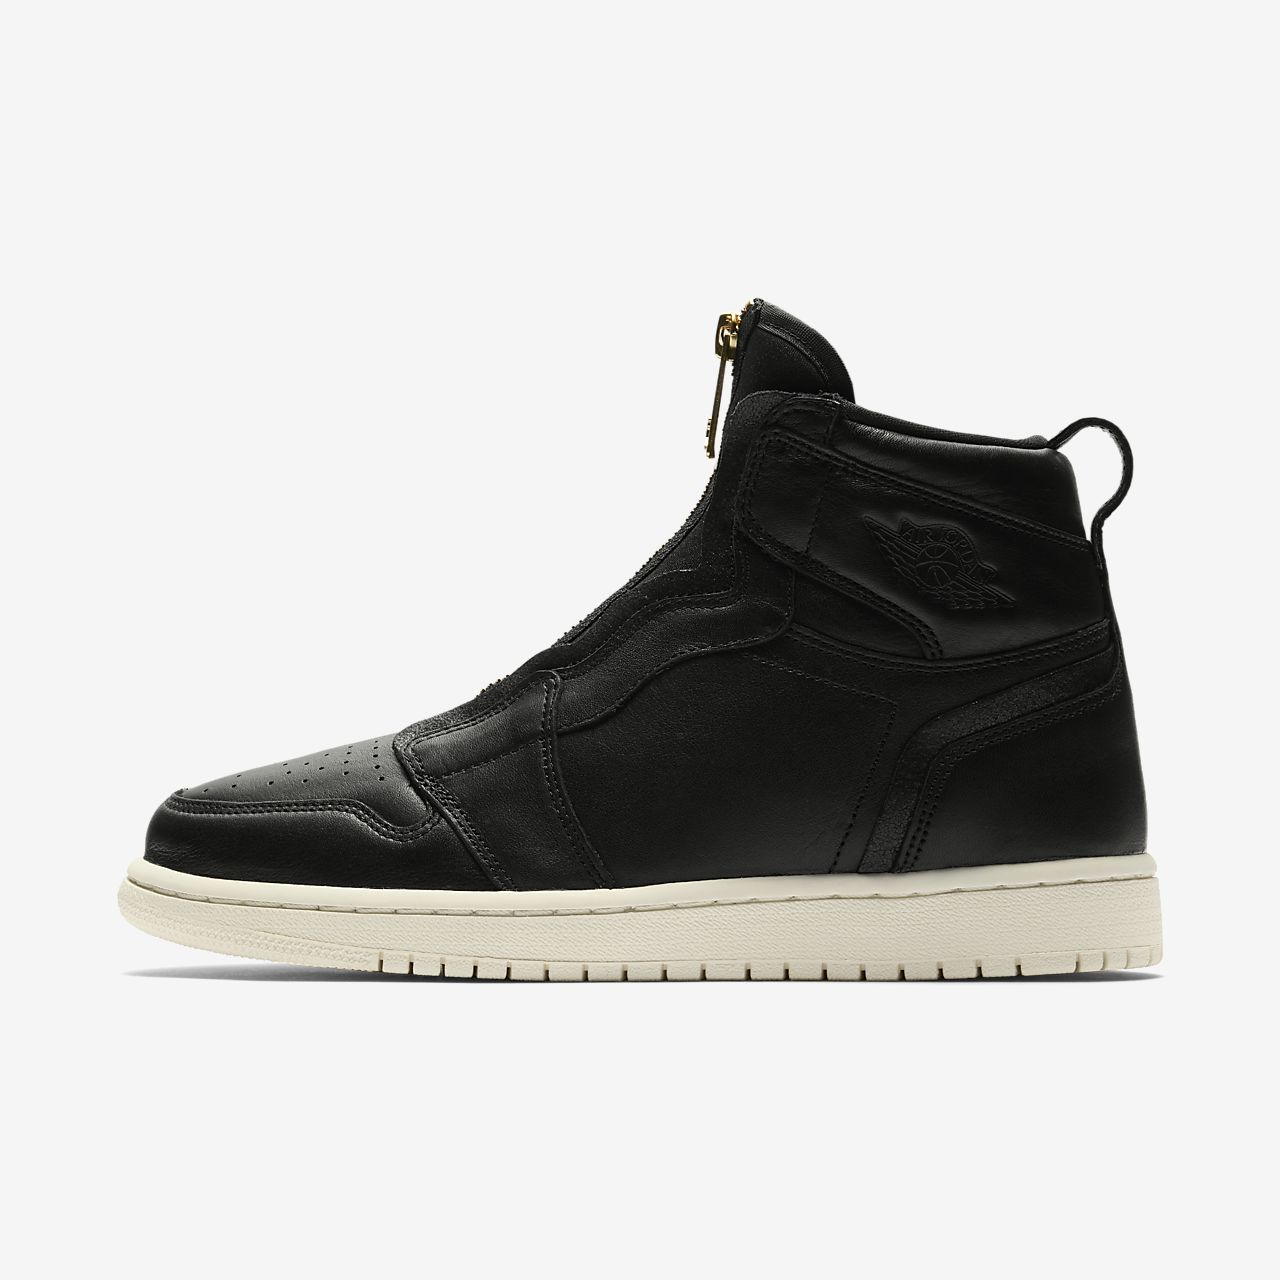 0c7006a55724ba Air Jordan 1 High Zip Women s Shoe. Nike.com